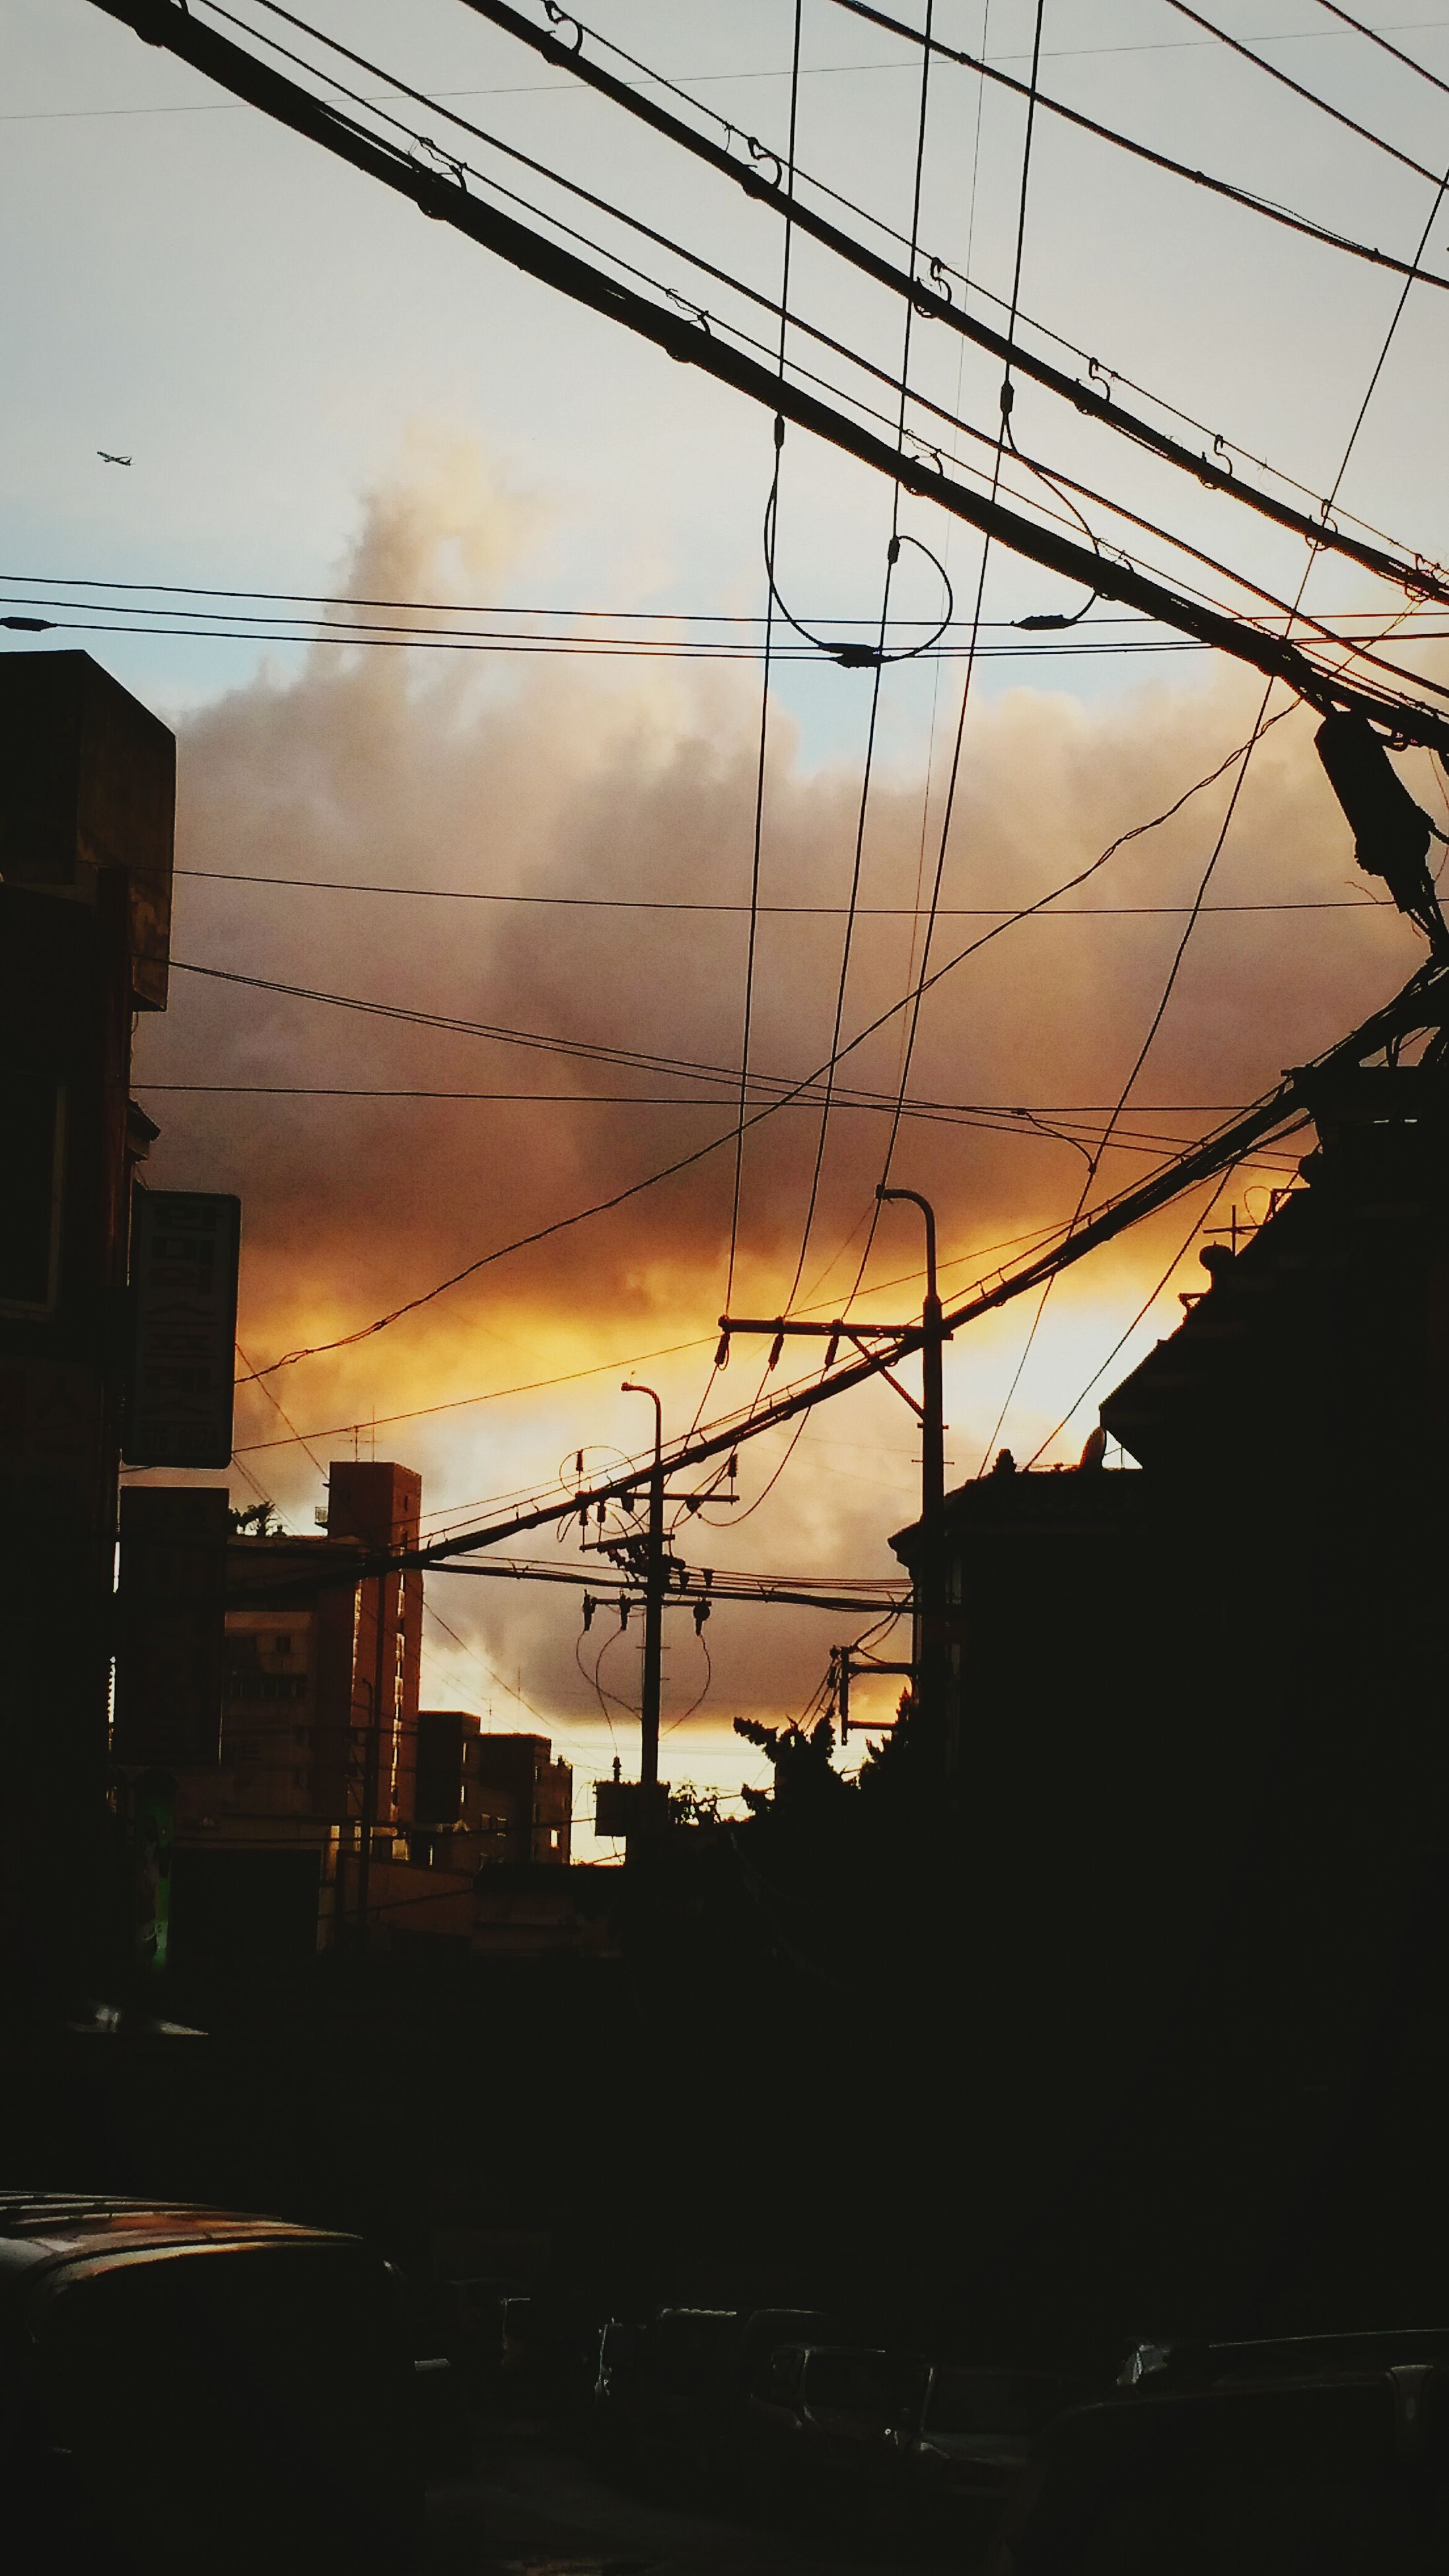 architecture, silhouette, built structure, building exterior, sunset, low angle view, sky, power line, electricity pylon, cable, building, electricity, dusk, connection, city, power supply, cloud - sky, no people, outdoors, residential structure